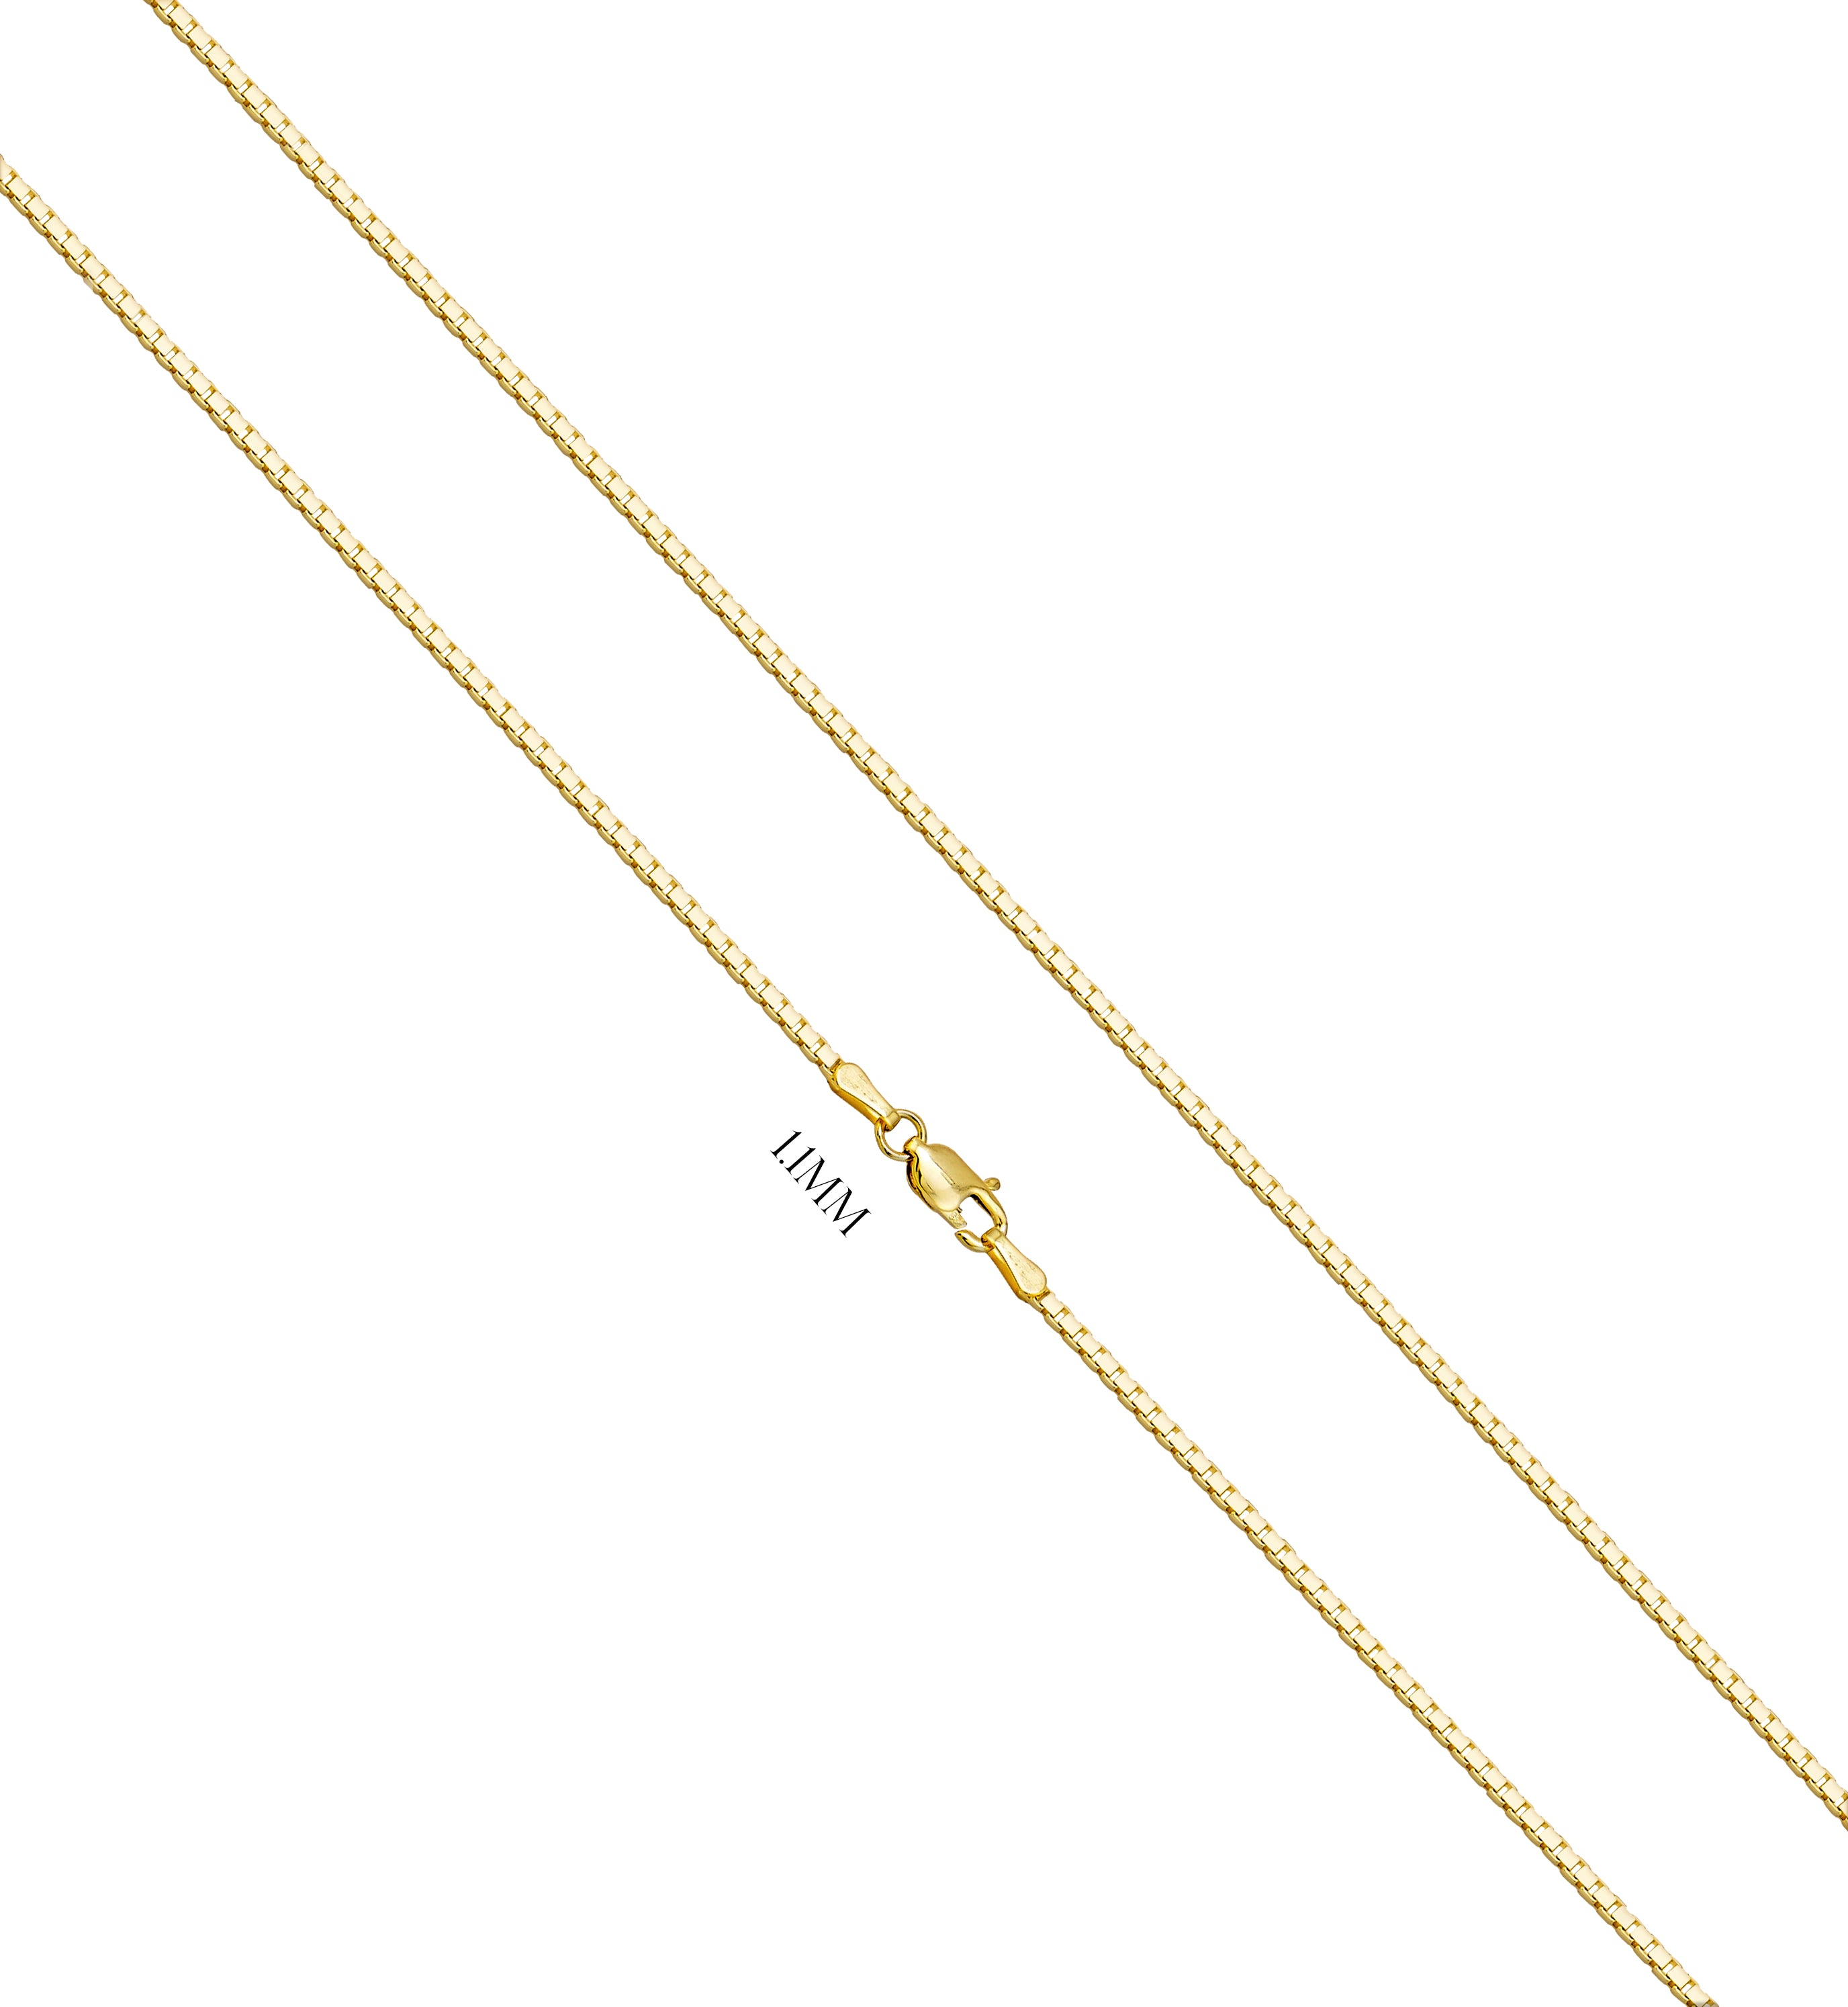 Box Chain With Lobster Claw Clasp - 1.1MM